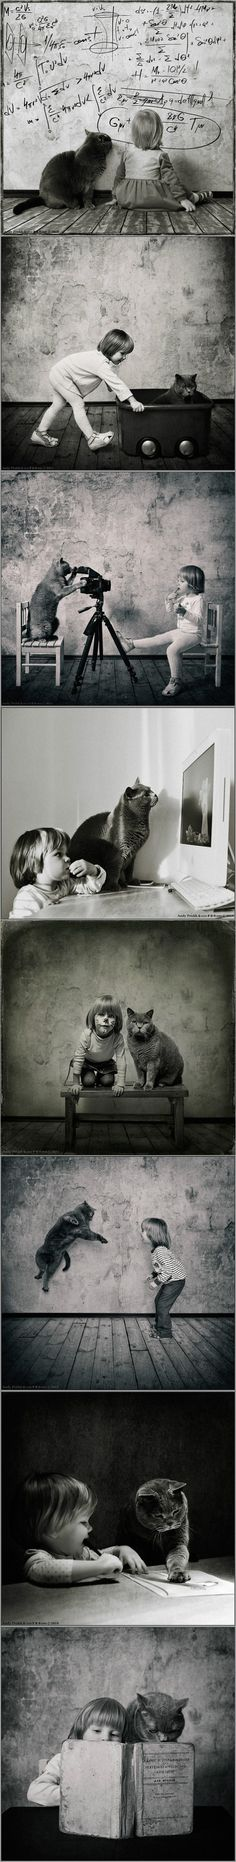 'Once upon a time a cat had a girl and a girl had a cat... And together they were two.' Photography by Andy Prokh. @freshfinds